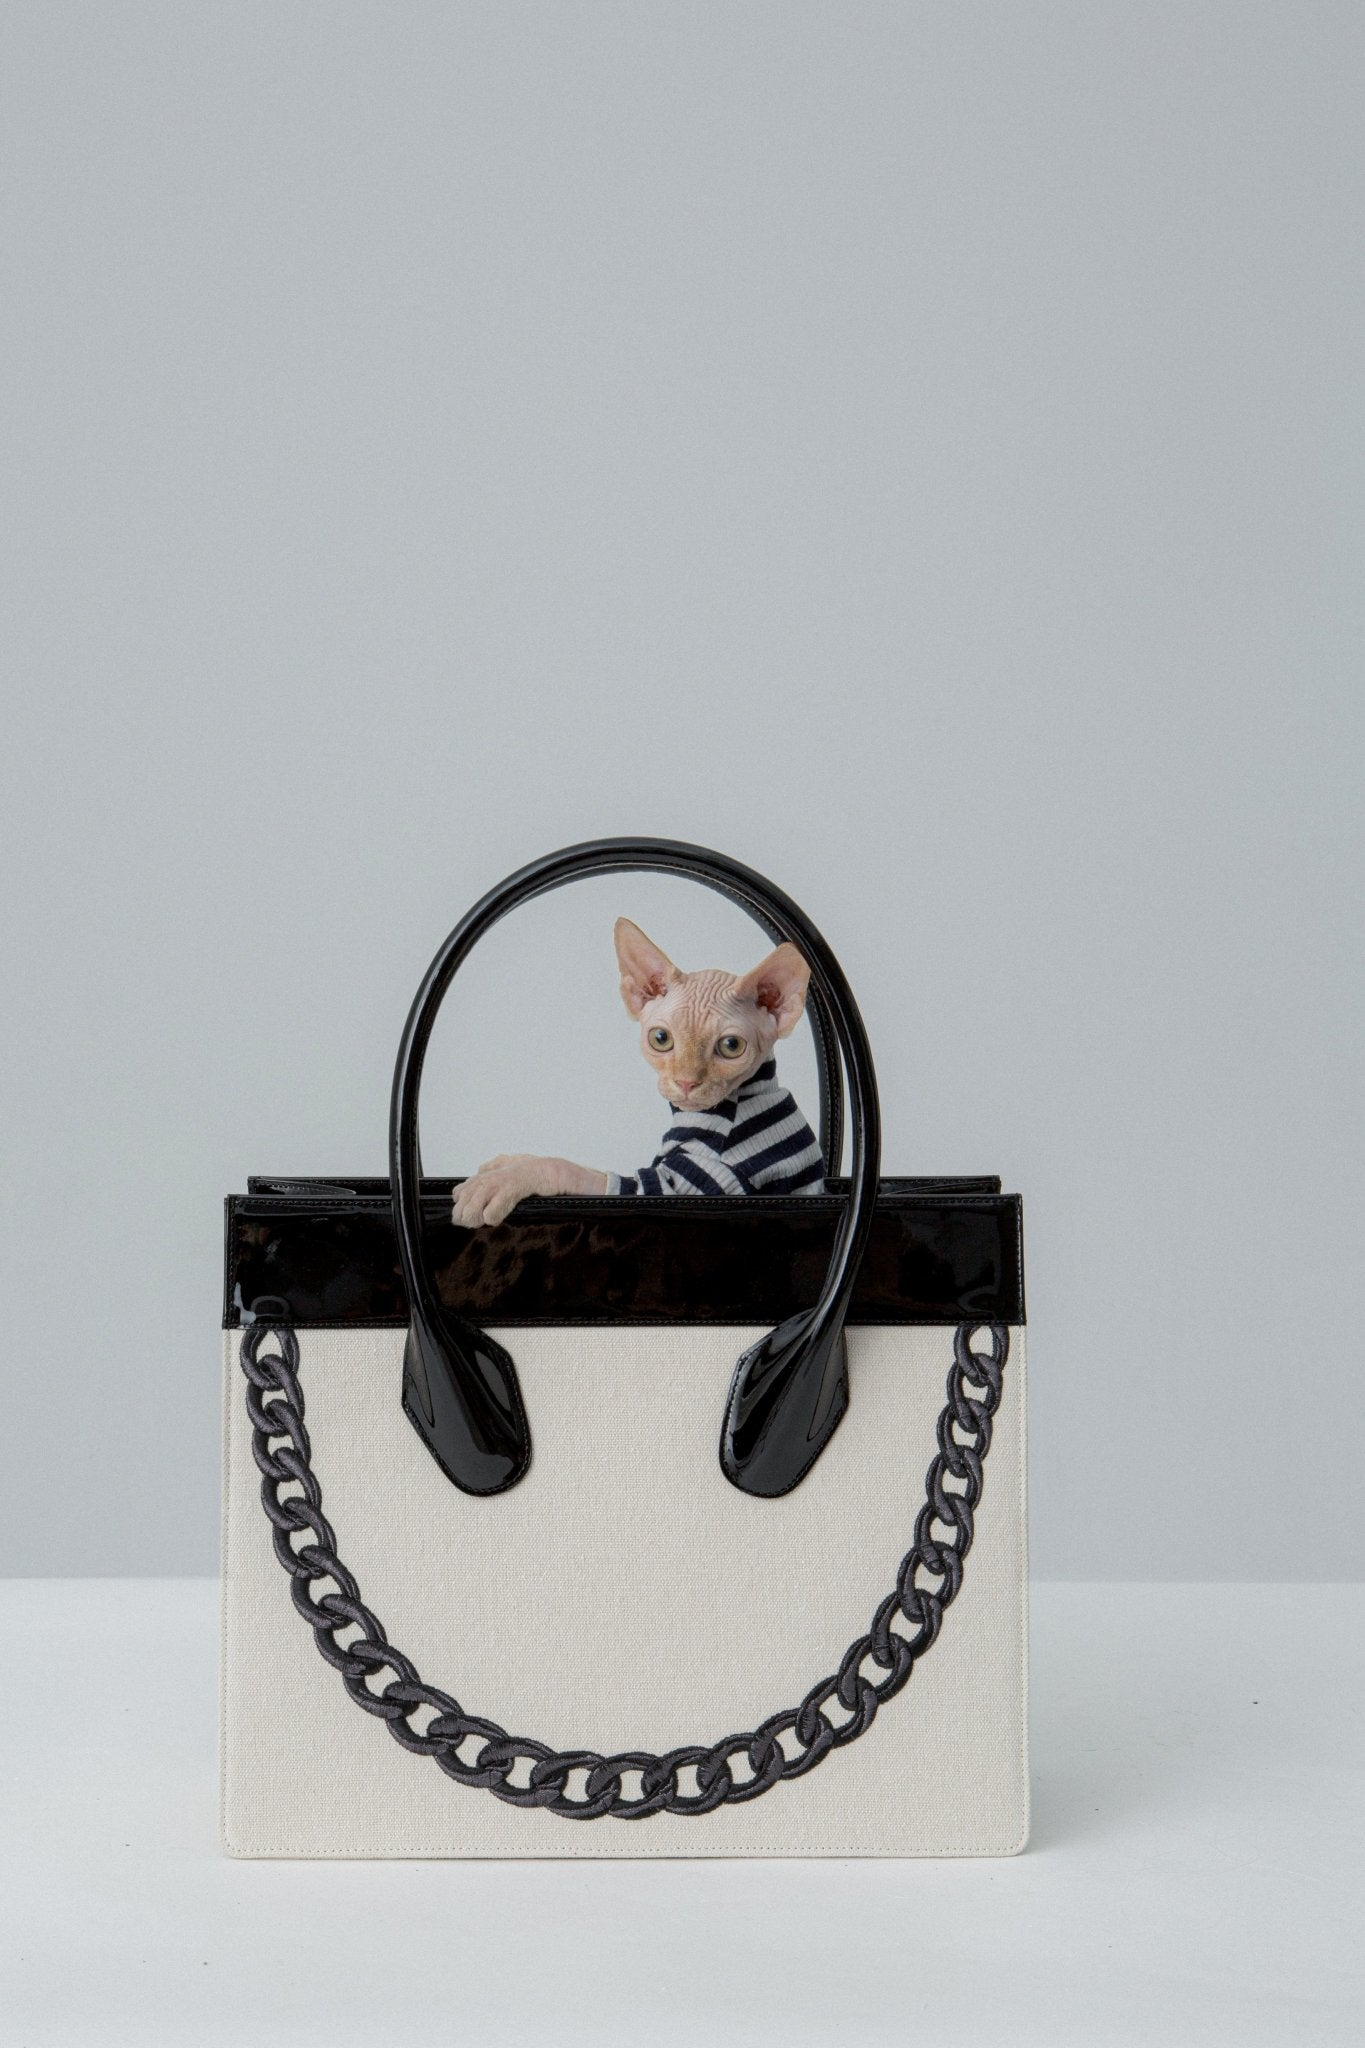 APEDE MOD Smiley Tote Black | MADA IN CHINA